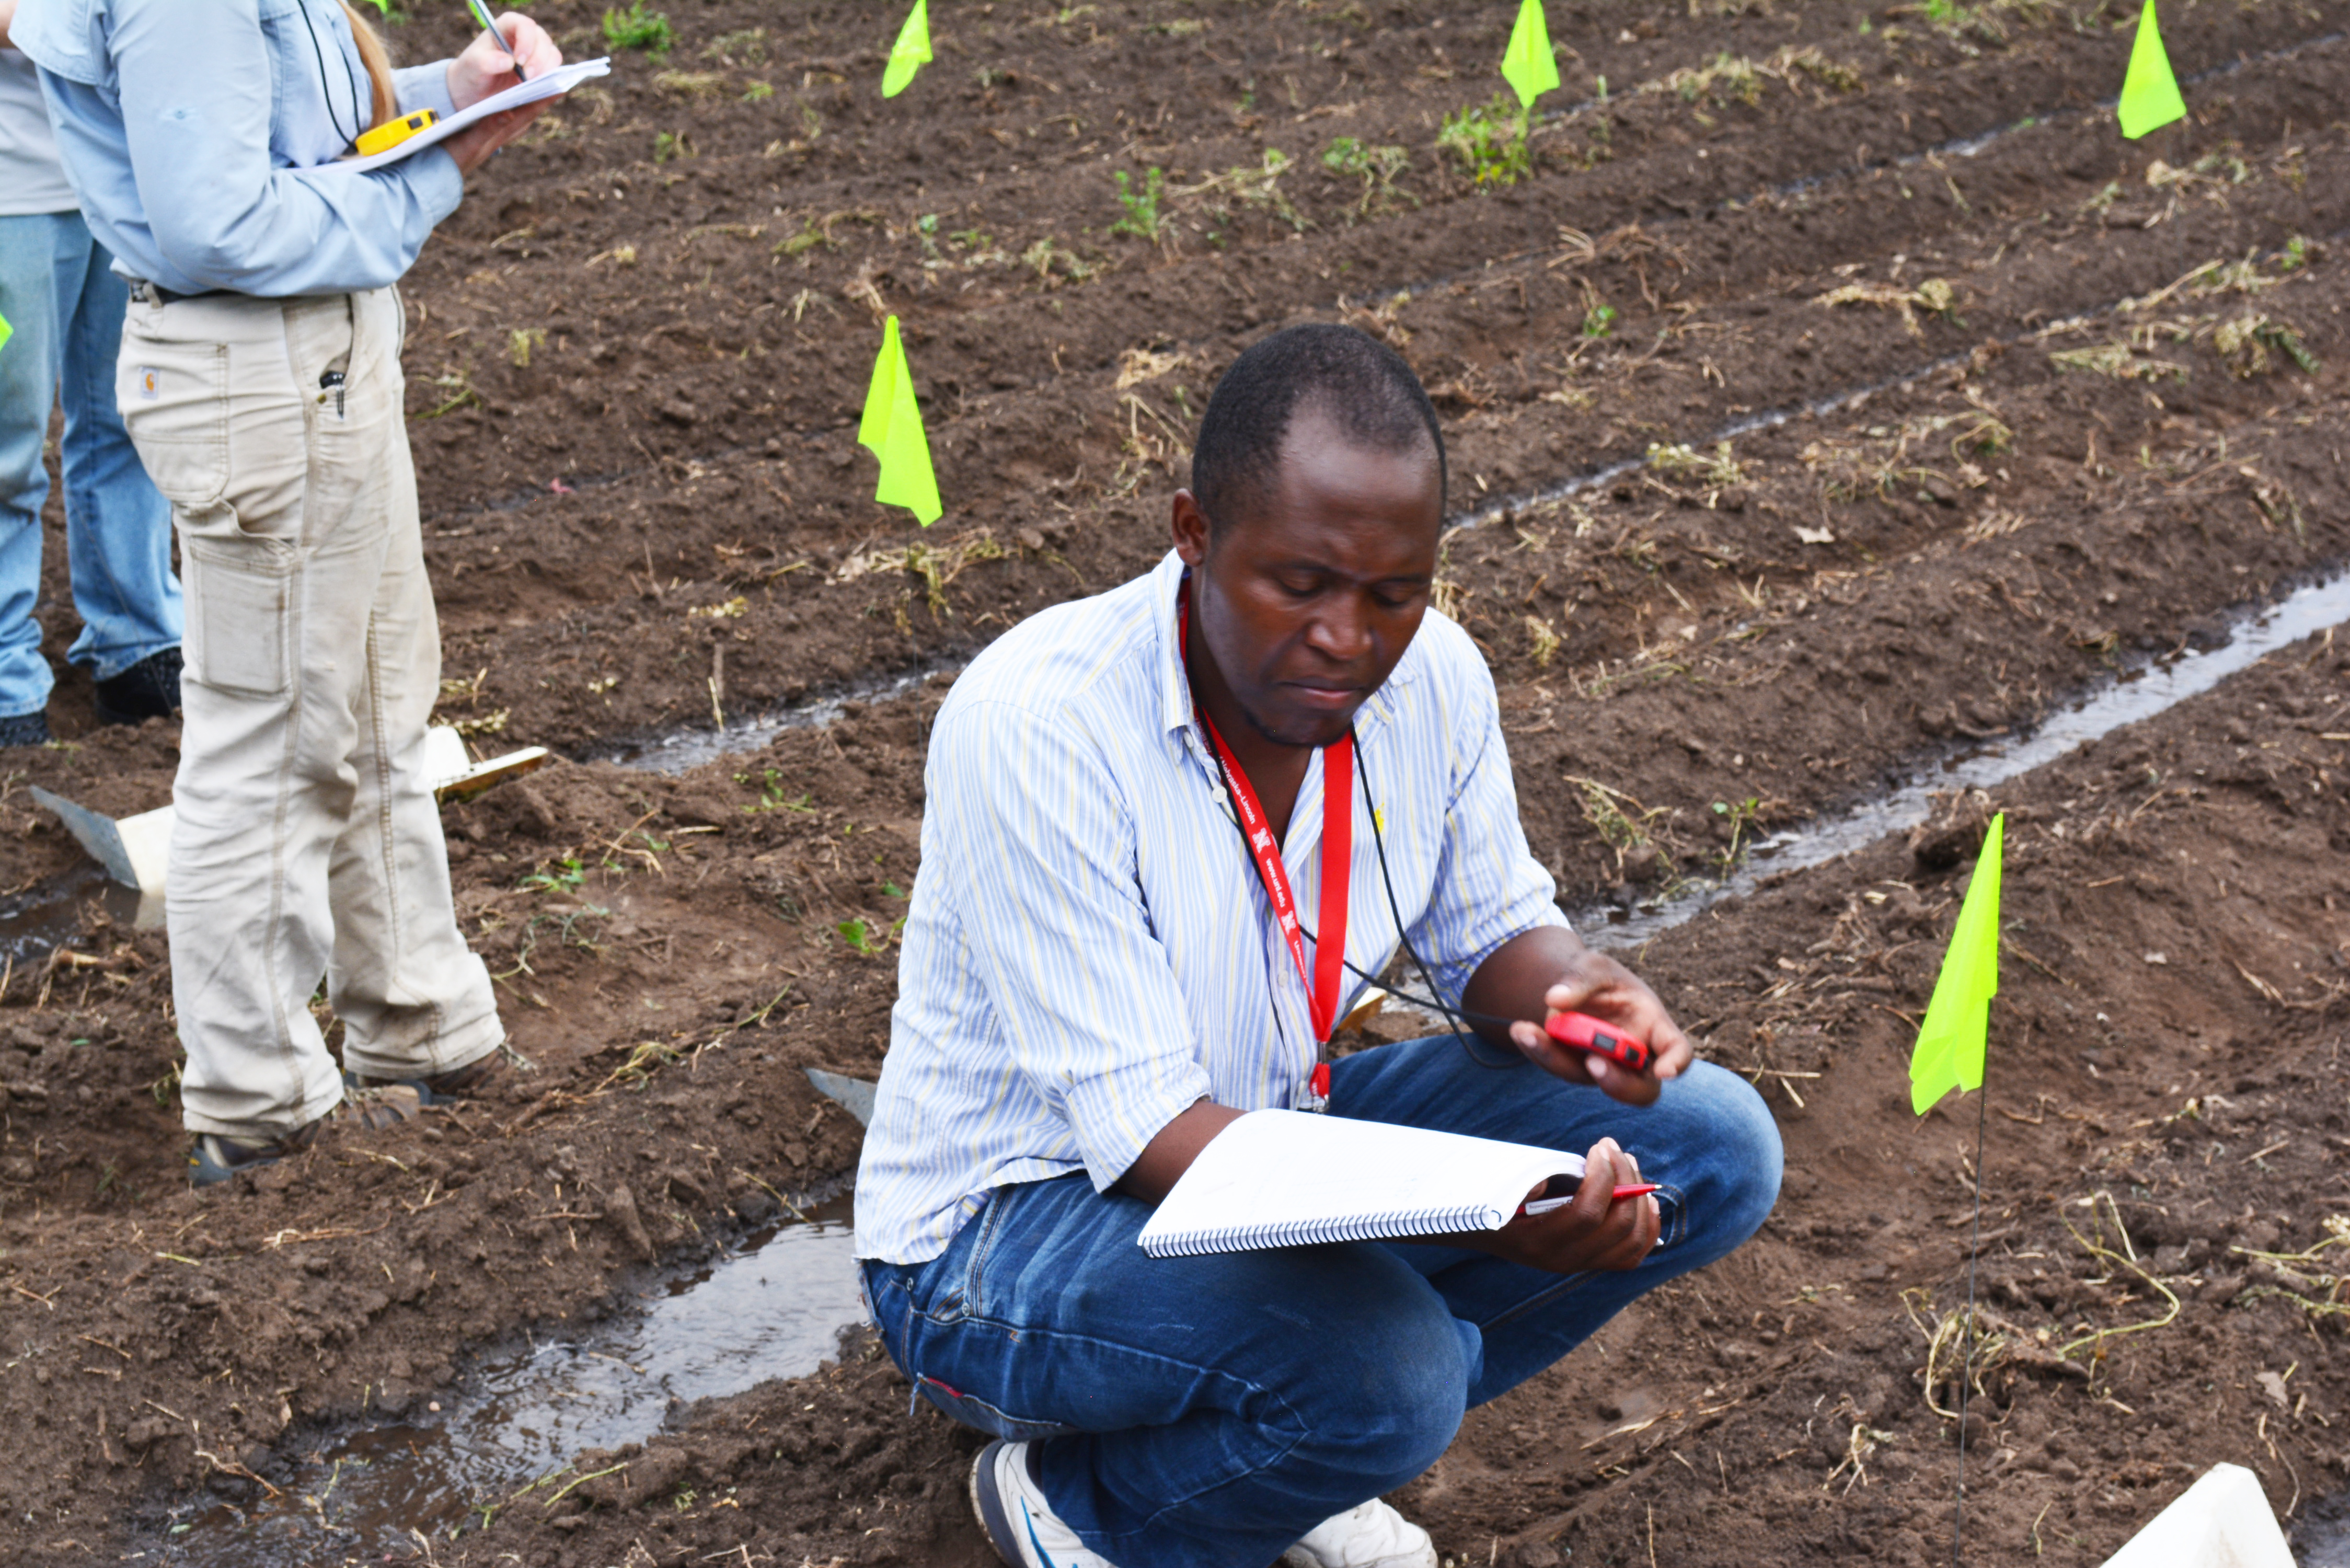 UNL graduate student Mavuto Banda from Malawi conducts a field experiment on irrigation water flow.